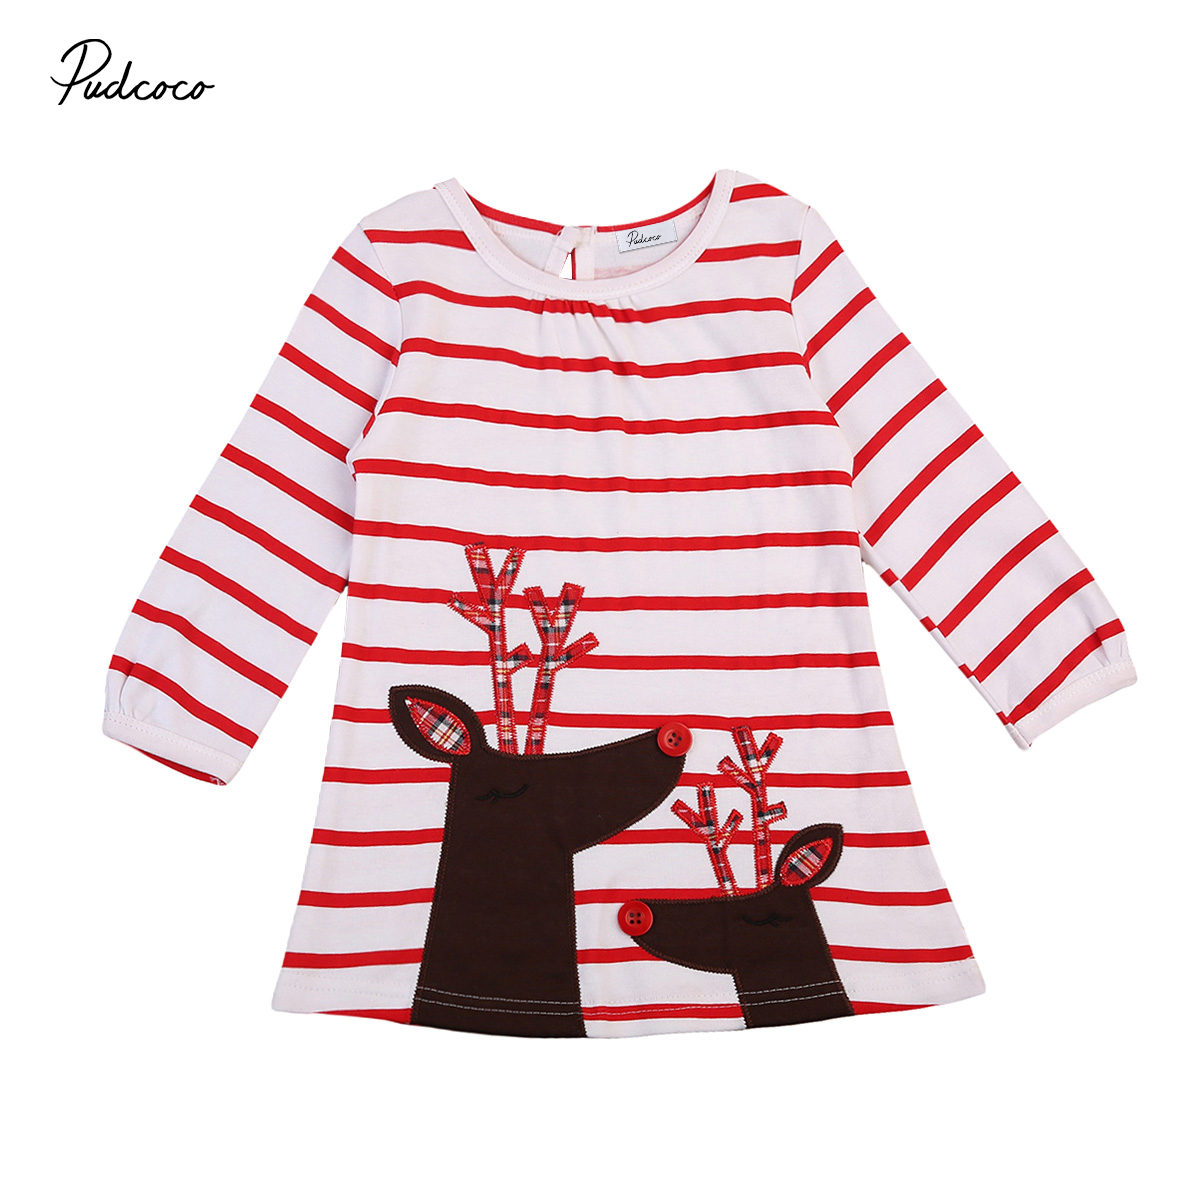 New Year Girls Clothes Christmas Girls Red Striped Cute deer dress Xmas dress Princess Dress Baby Cotton Dress children clothing curved hem striped tee dress